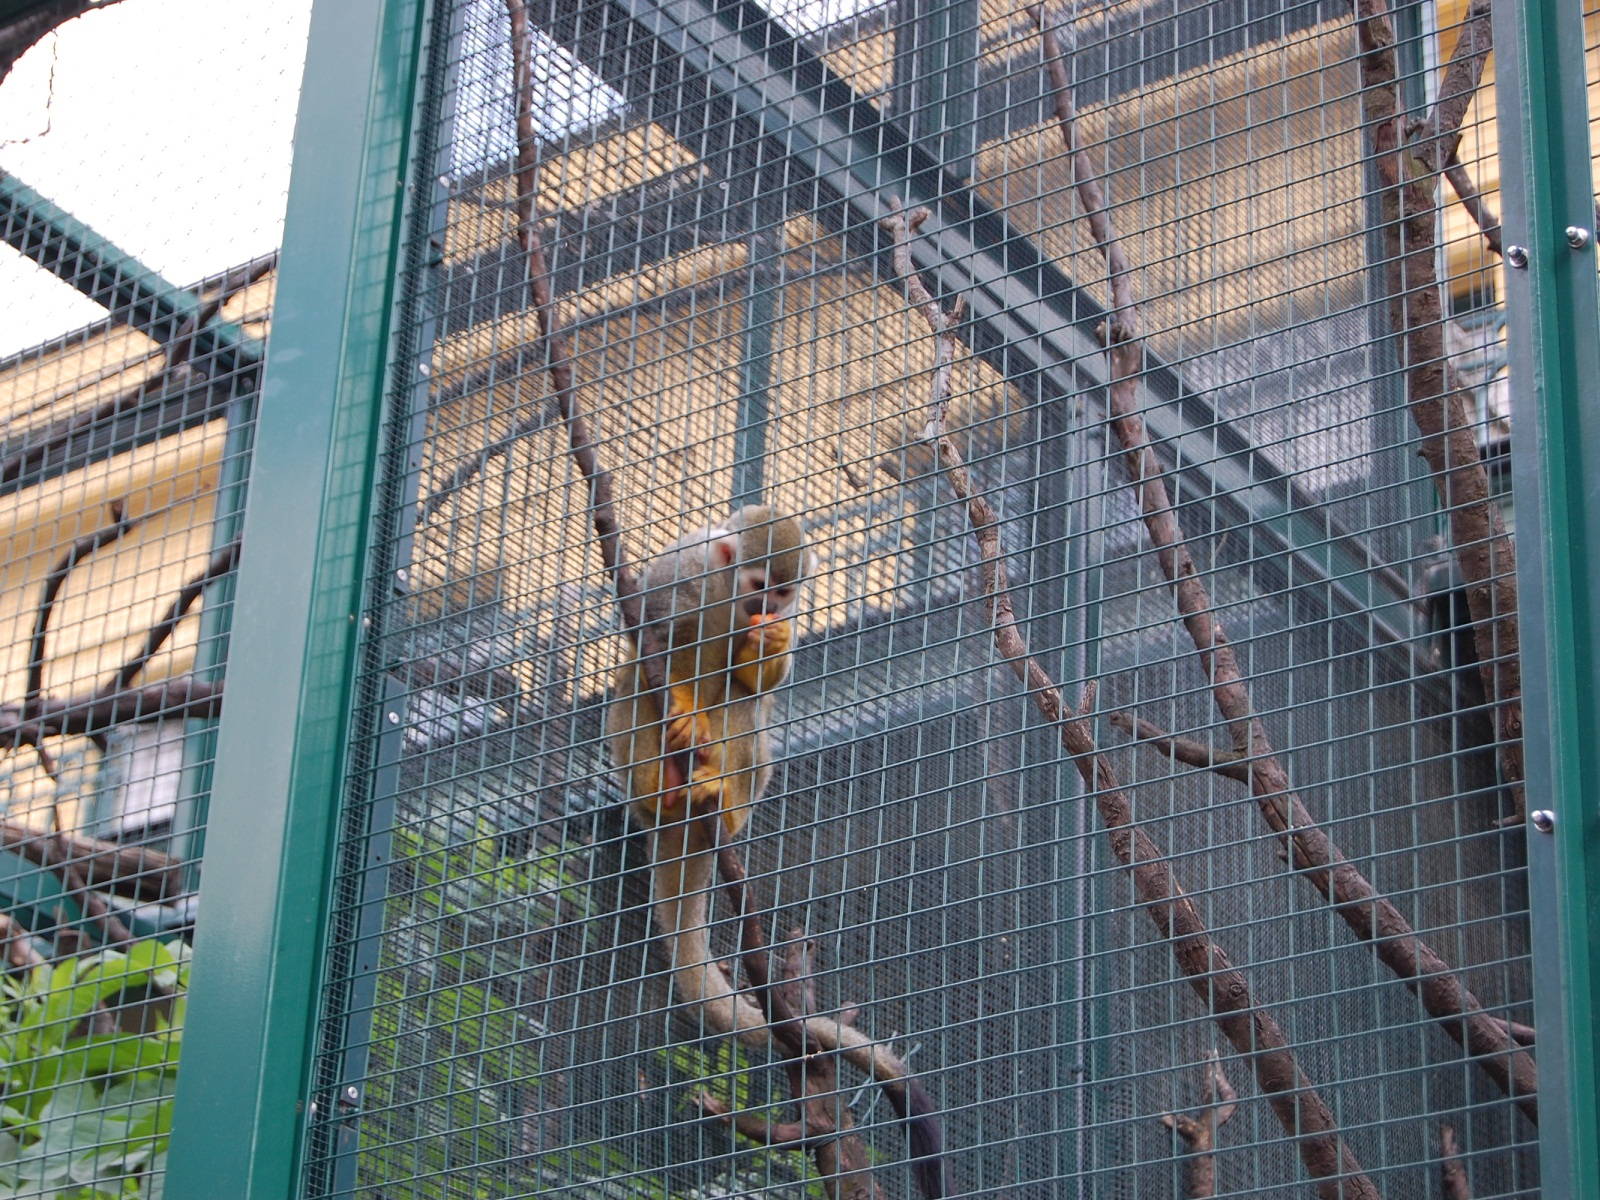 Vienna Schonbrunn Zoo, Austria, squirrel monkey